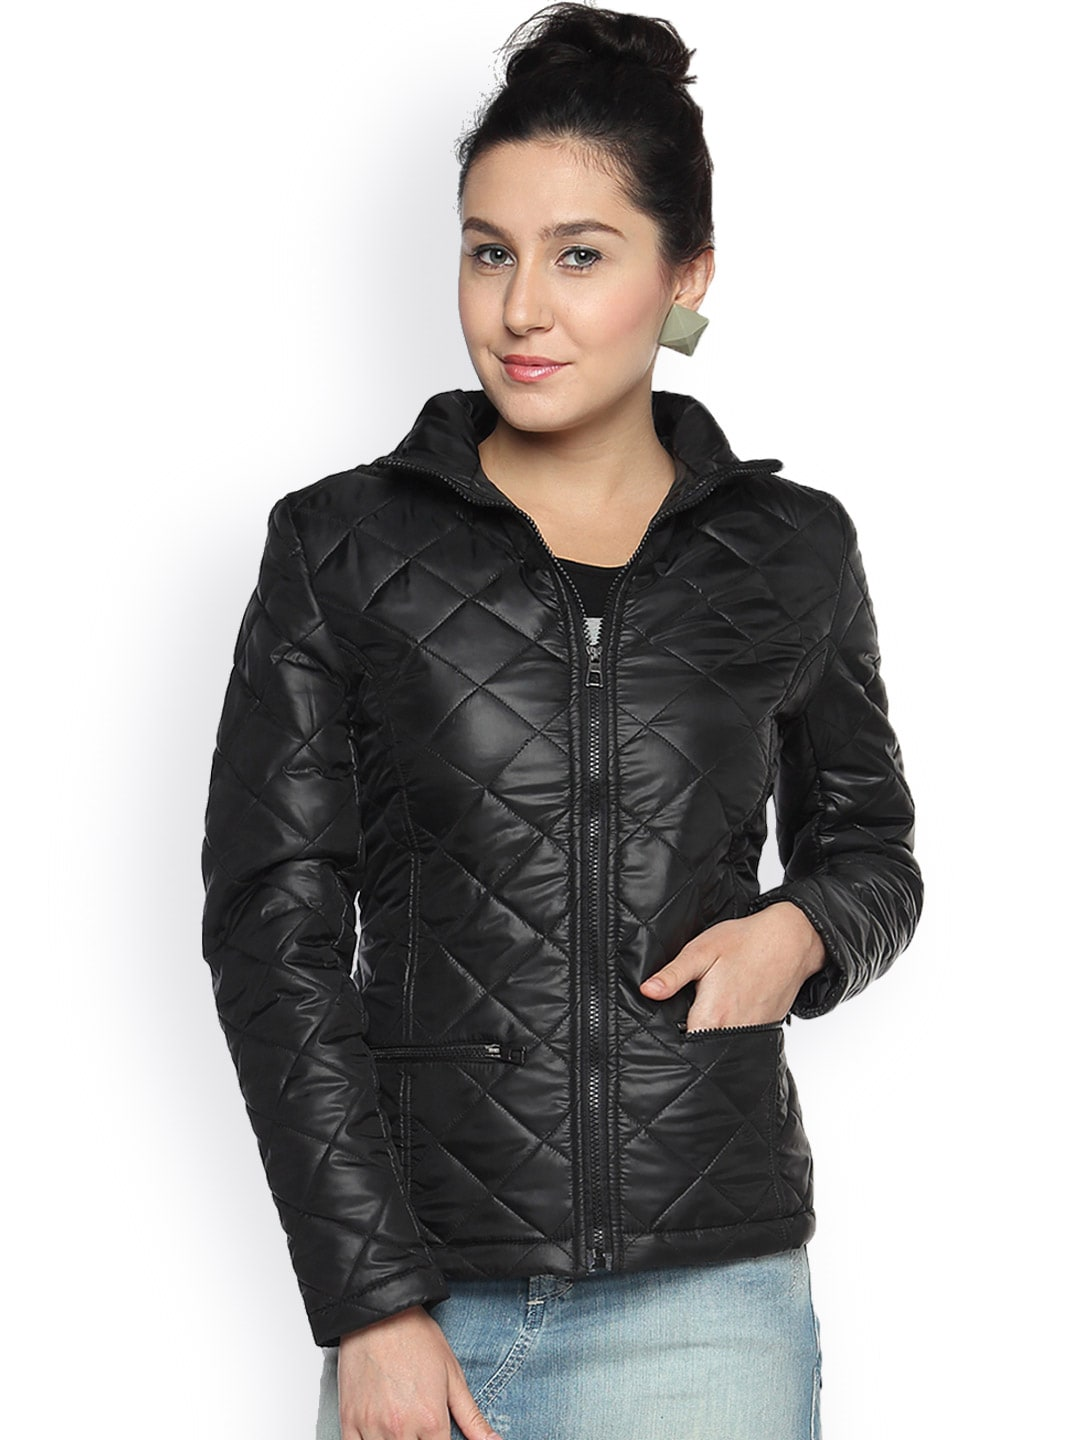 Shop eBay for great deals on Women's Coats, Jackets & Vests. You'll find new or used products in Women's Coats, Jackets & Vests on eBay. Free shipping on selected items.